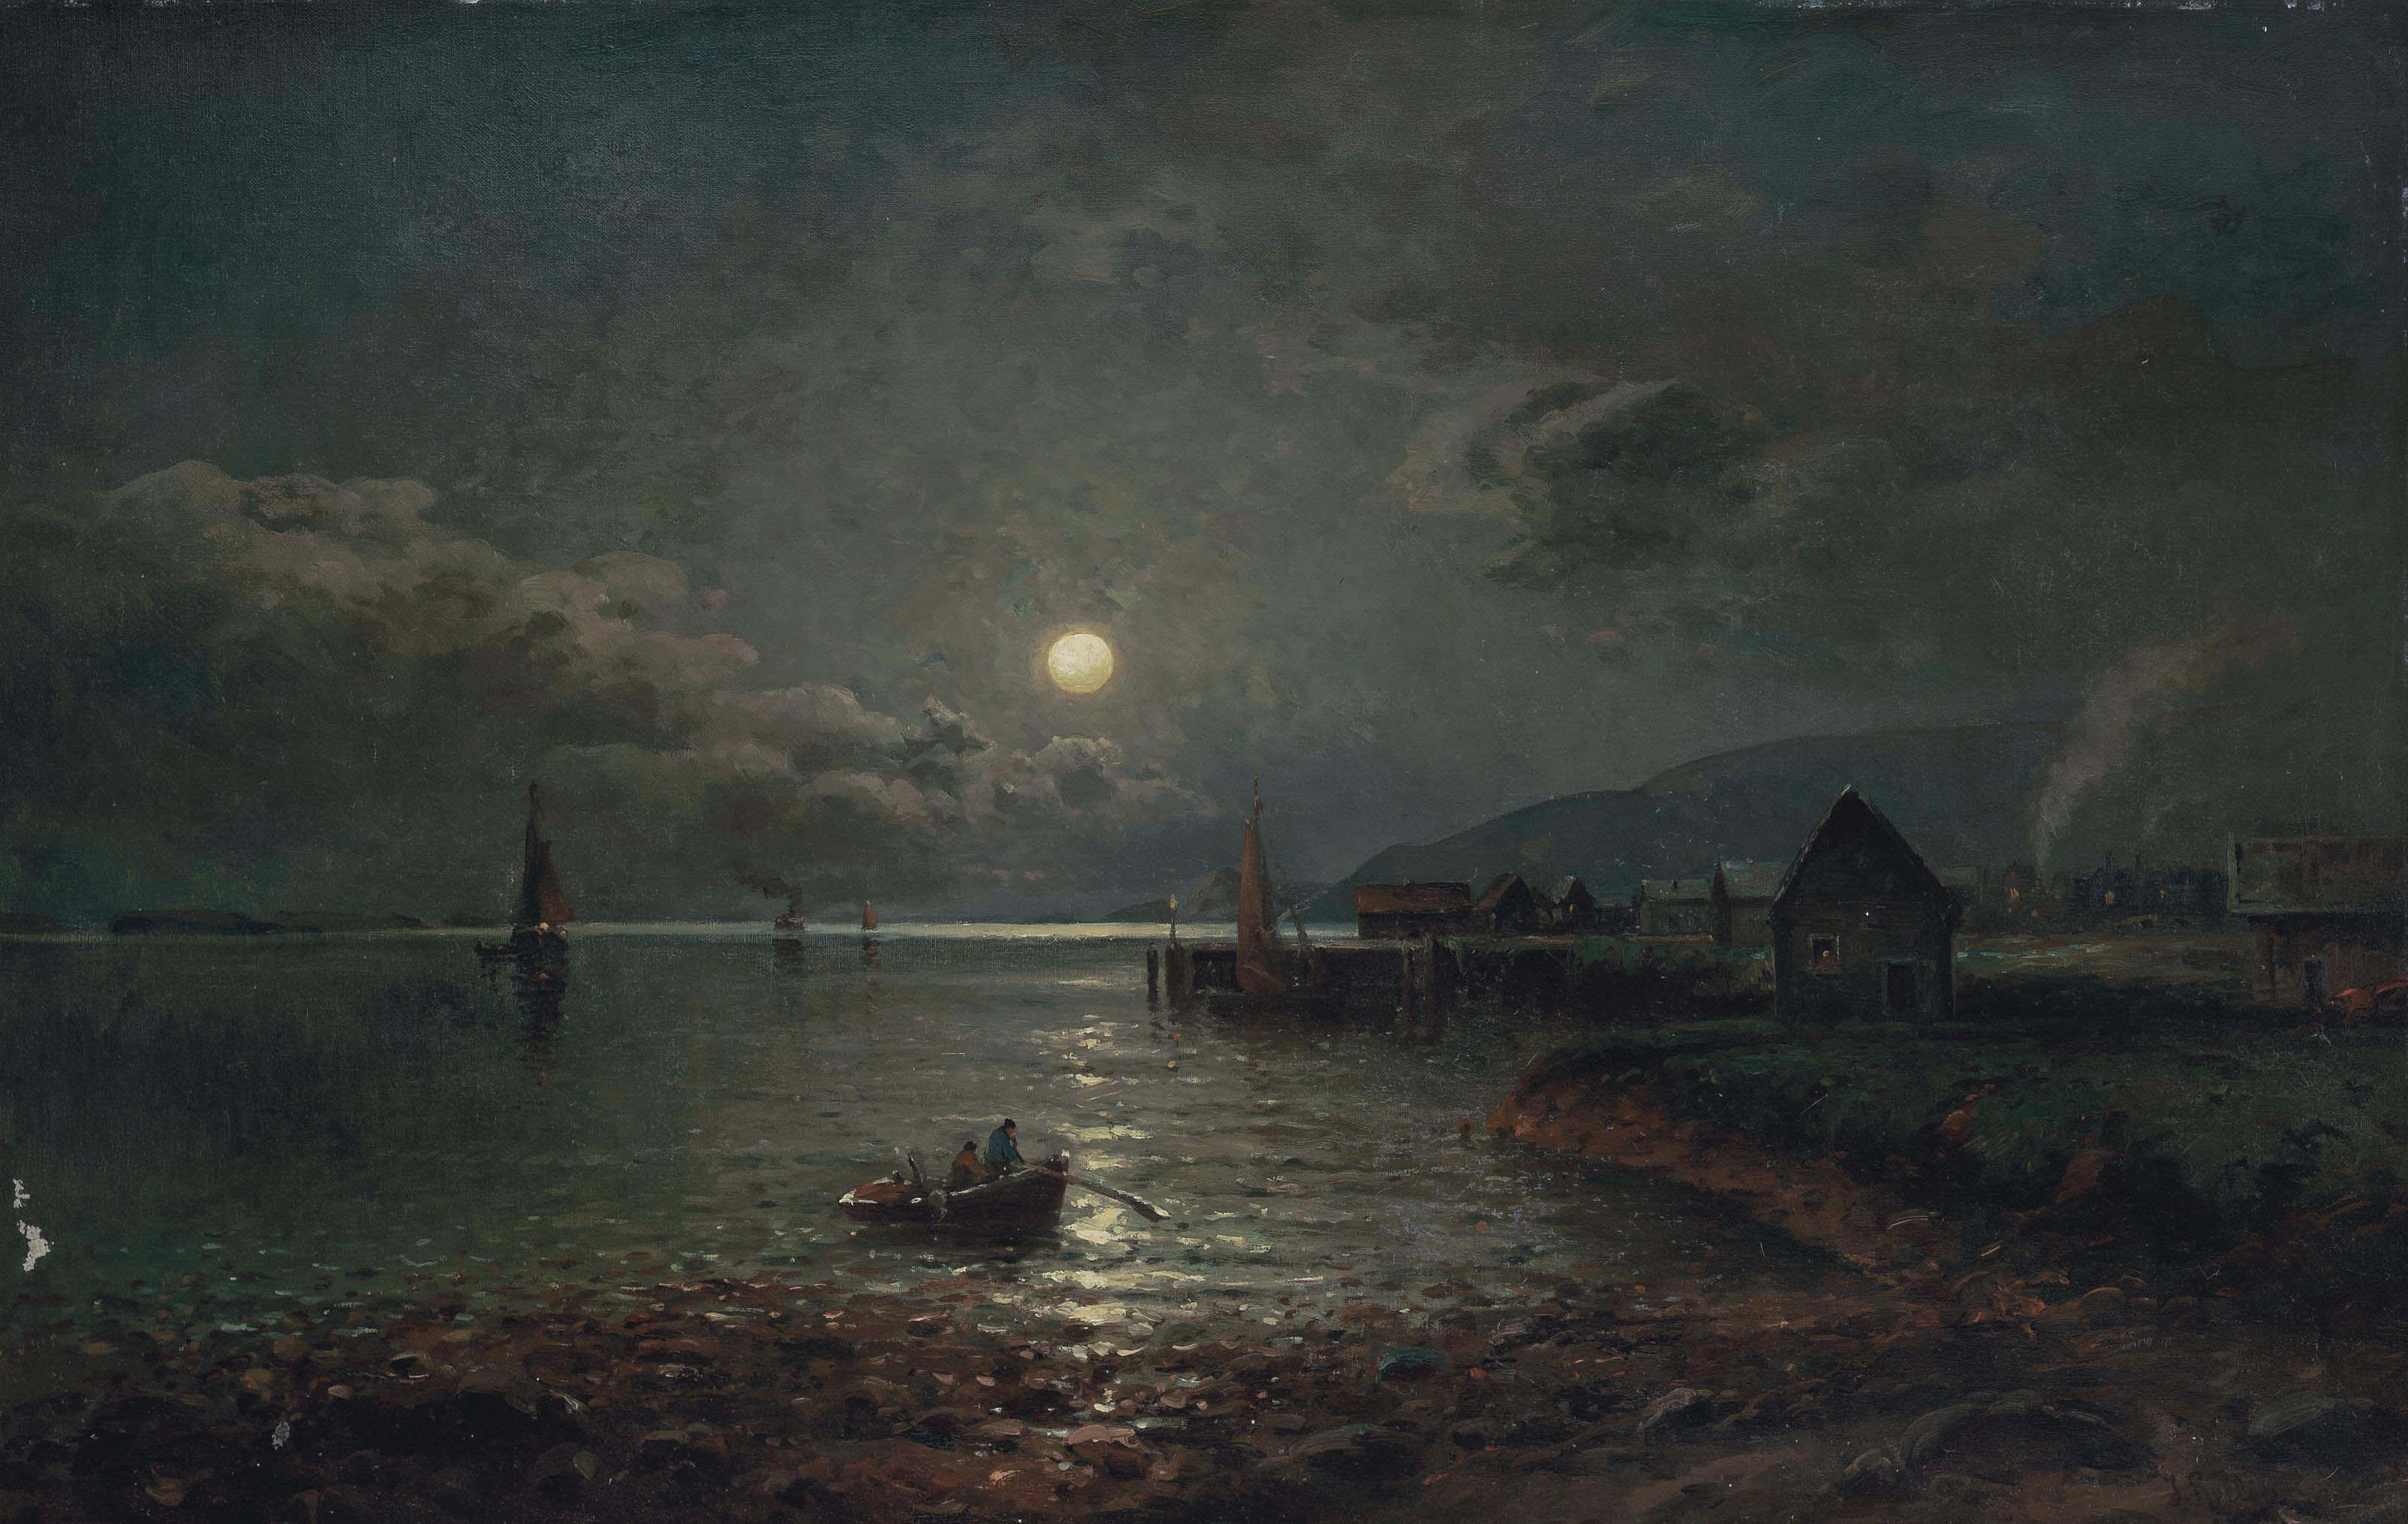 Coming ashore under the moon